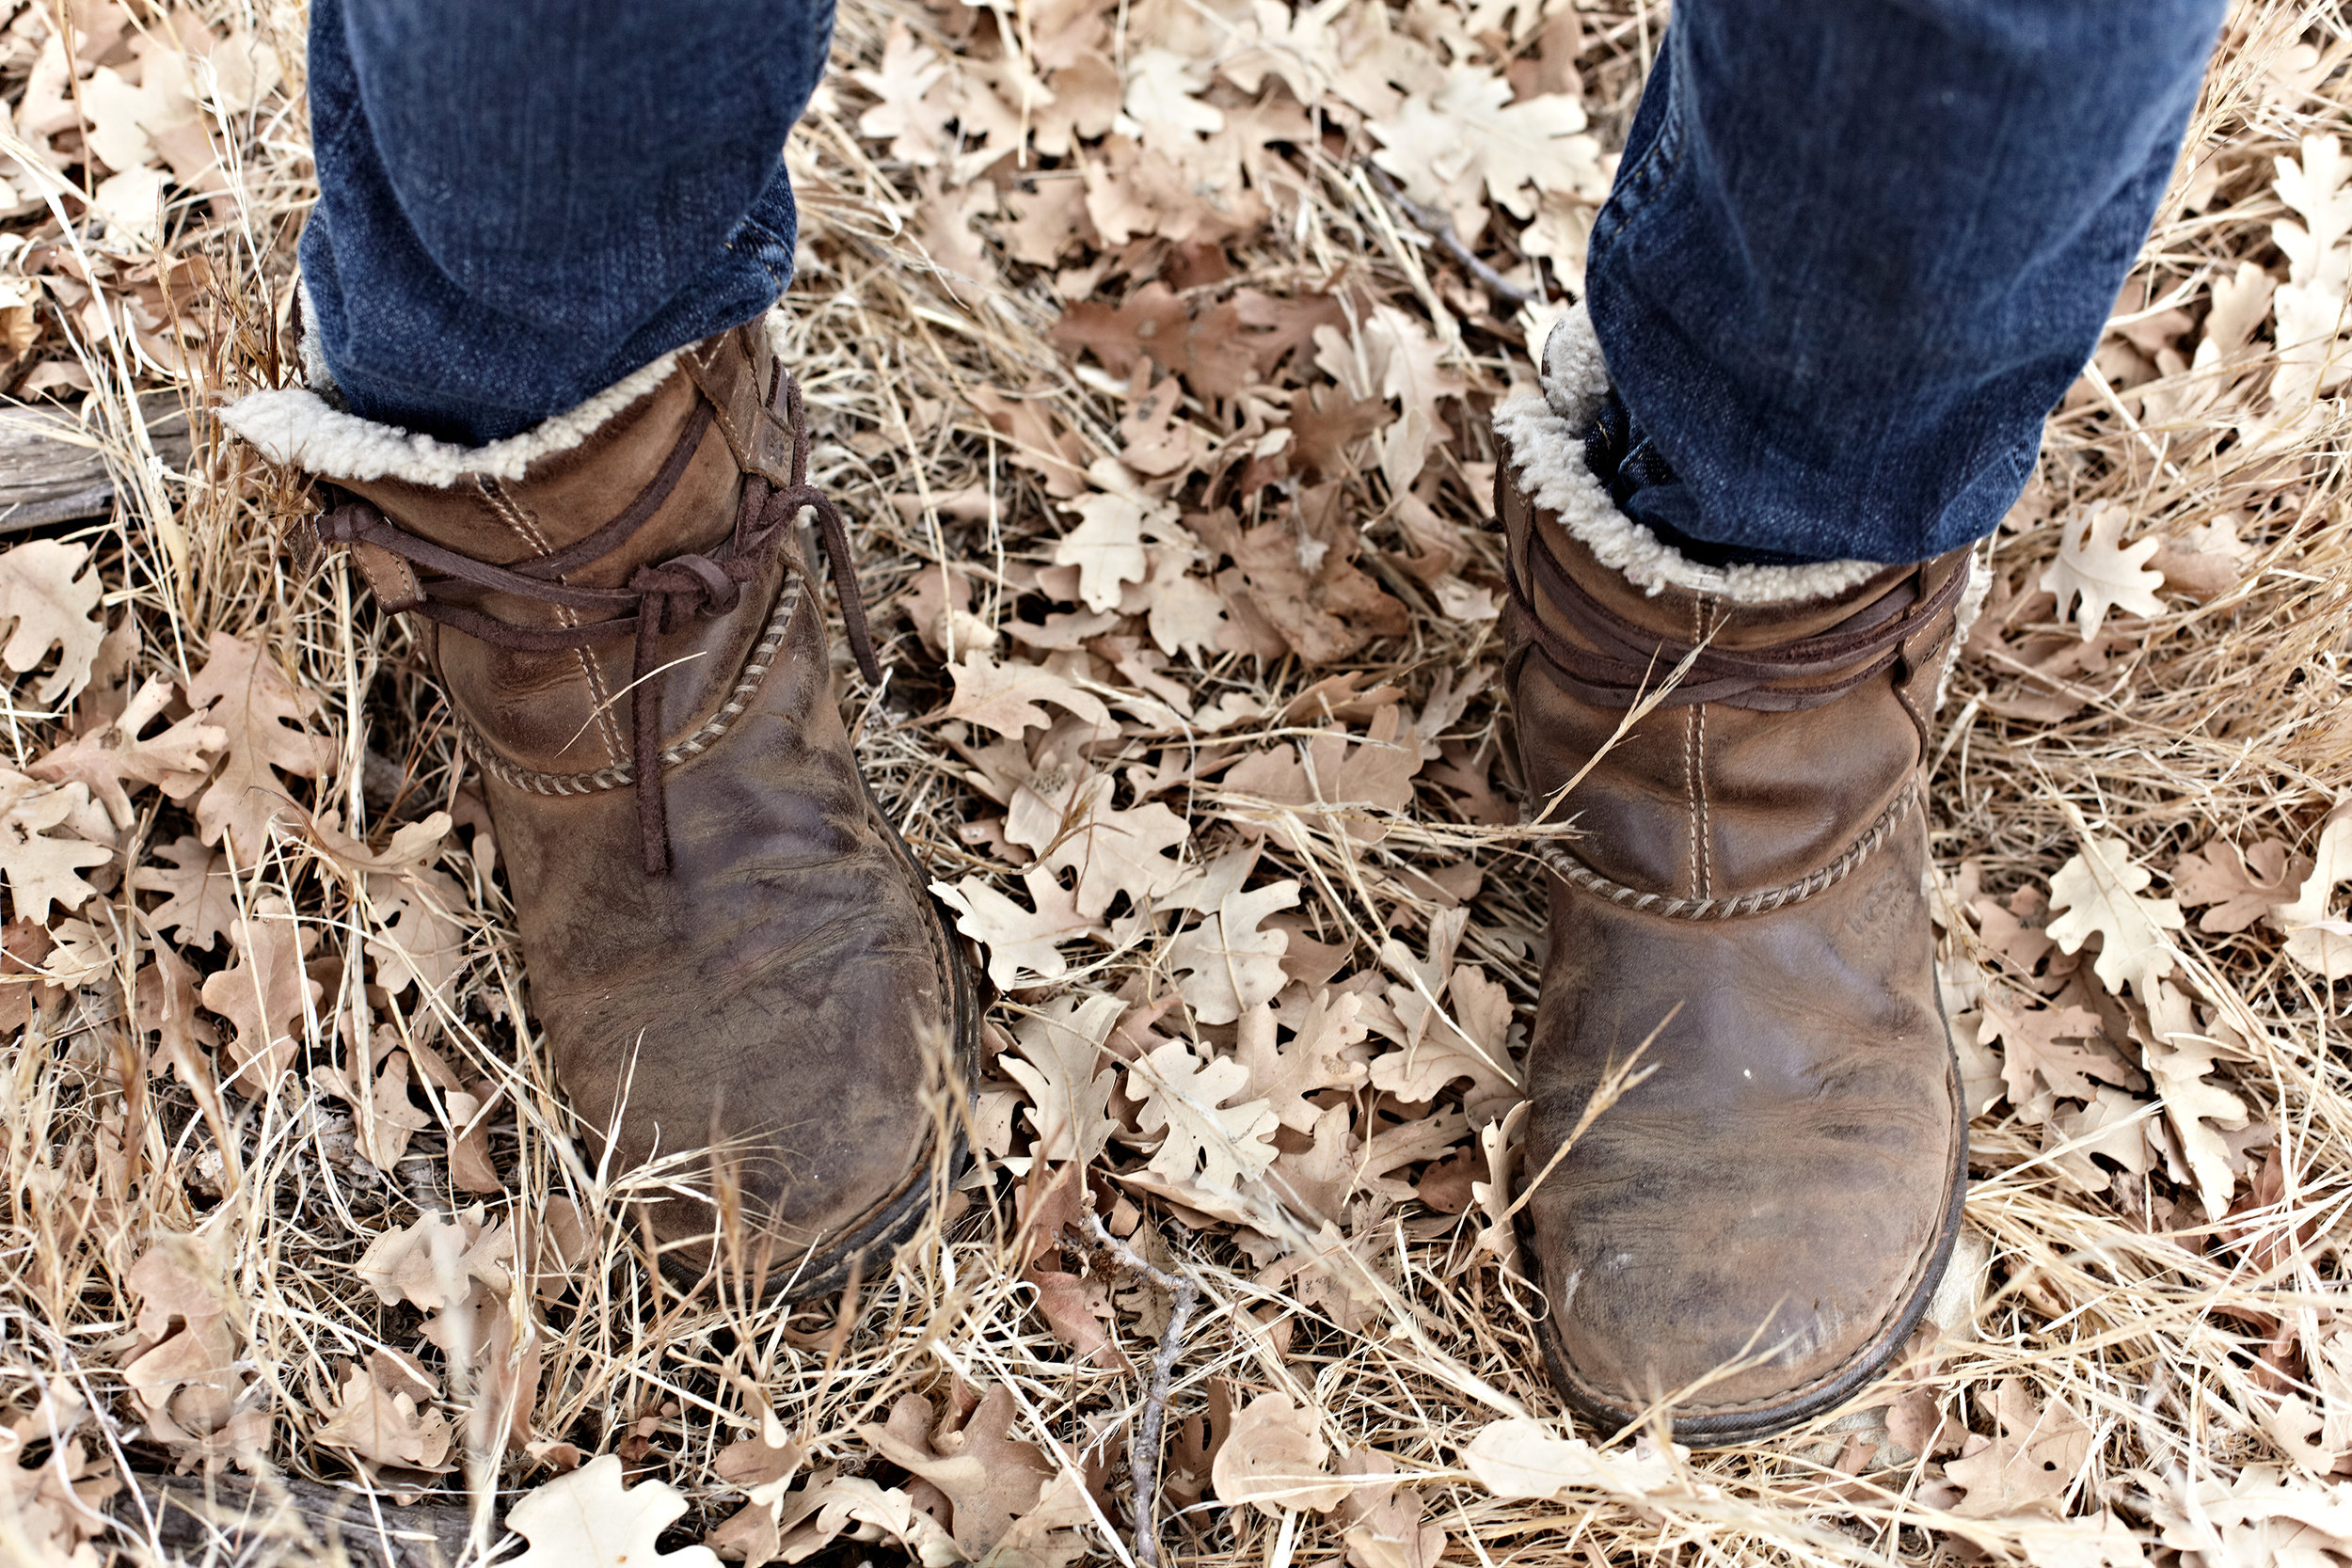 Young woman standing in fallen oak leaves wearing Ugg boots